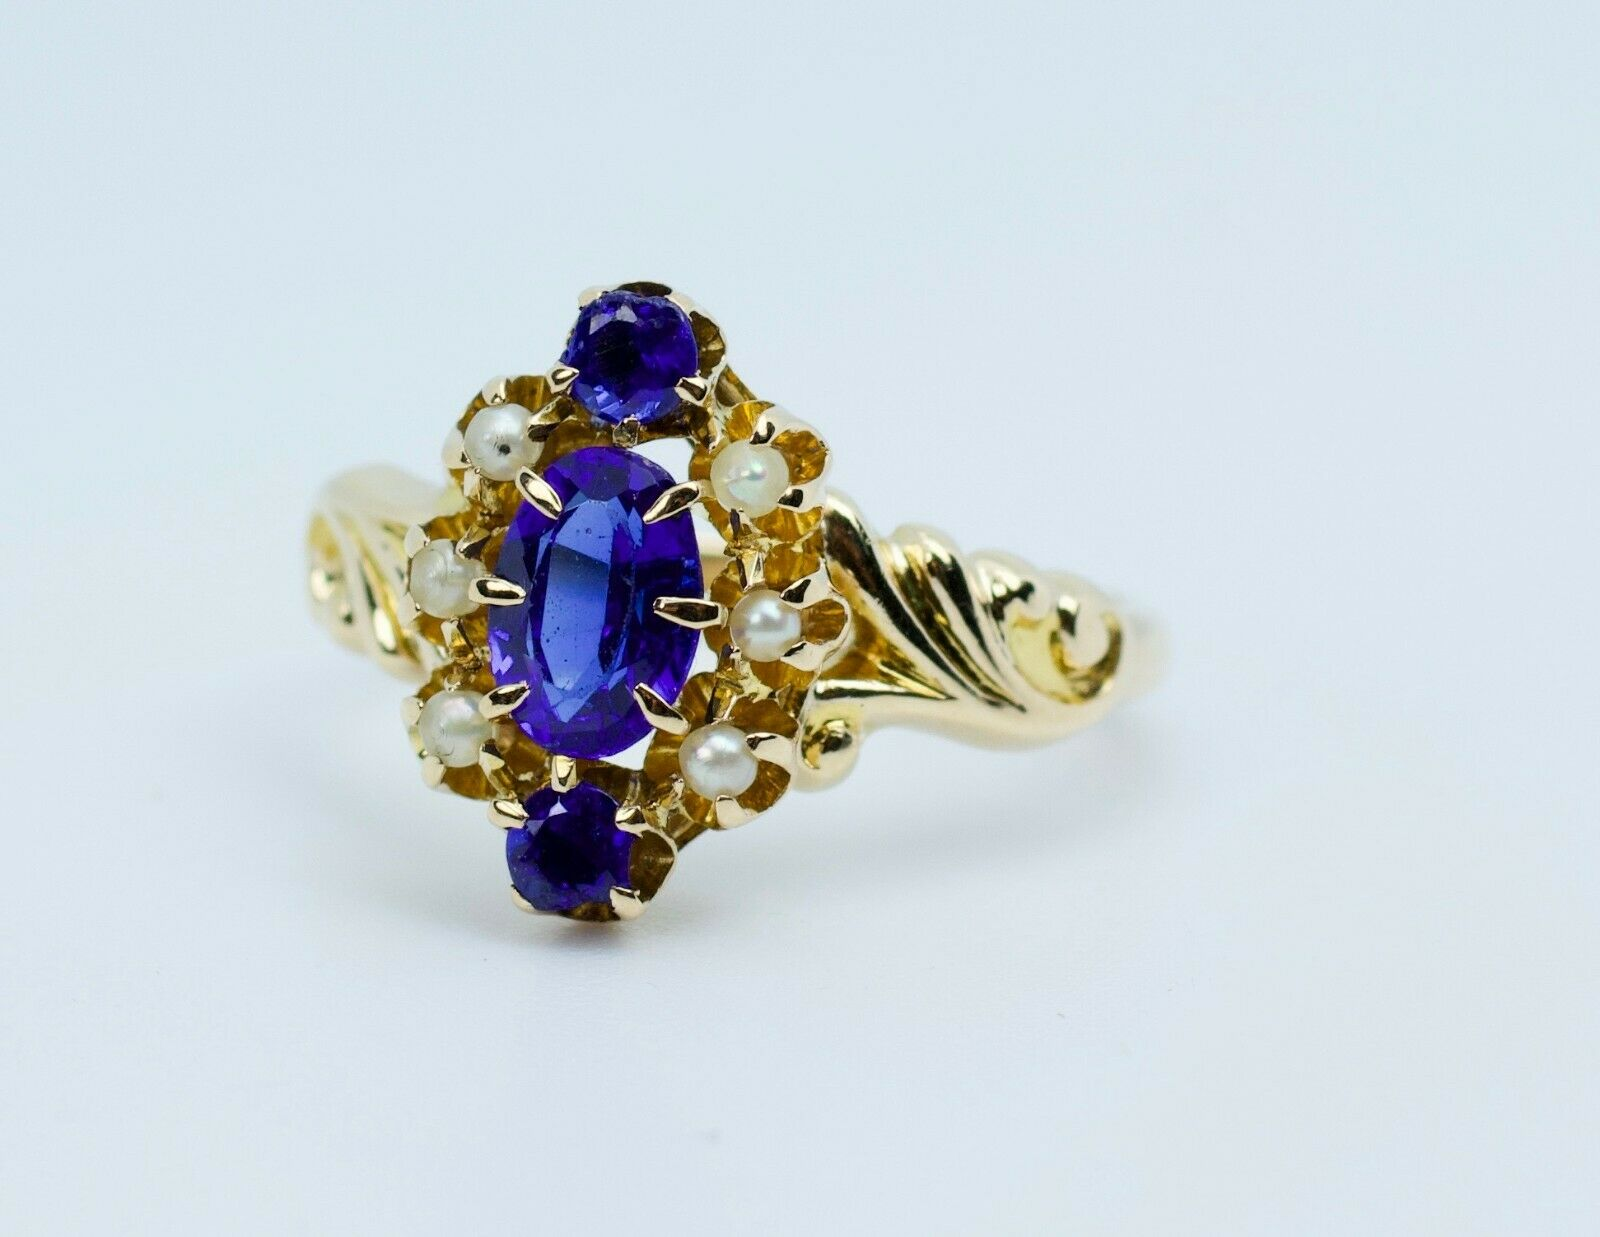 Vintage 14k Yellow Gold Oval Blue Synthetic Sapph… - image 10